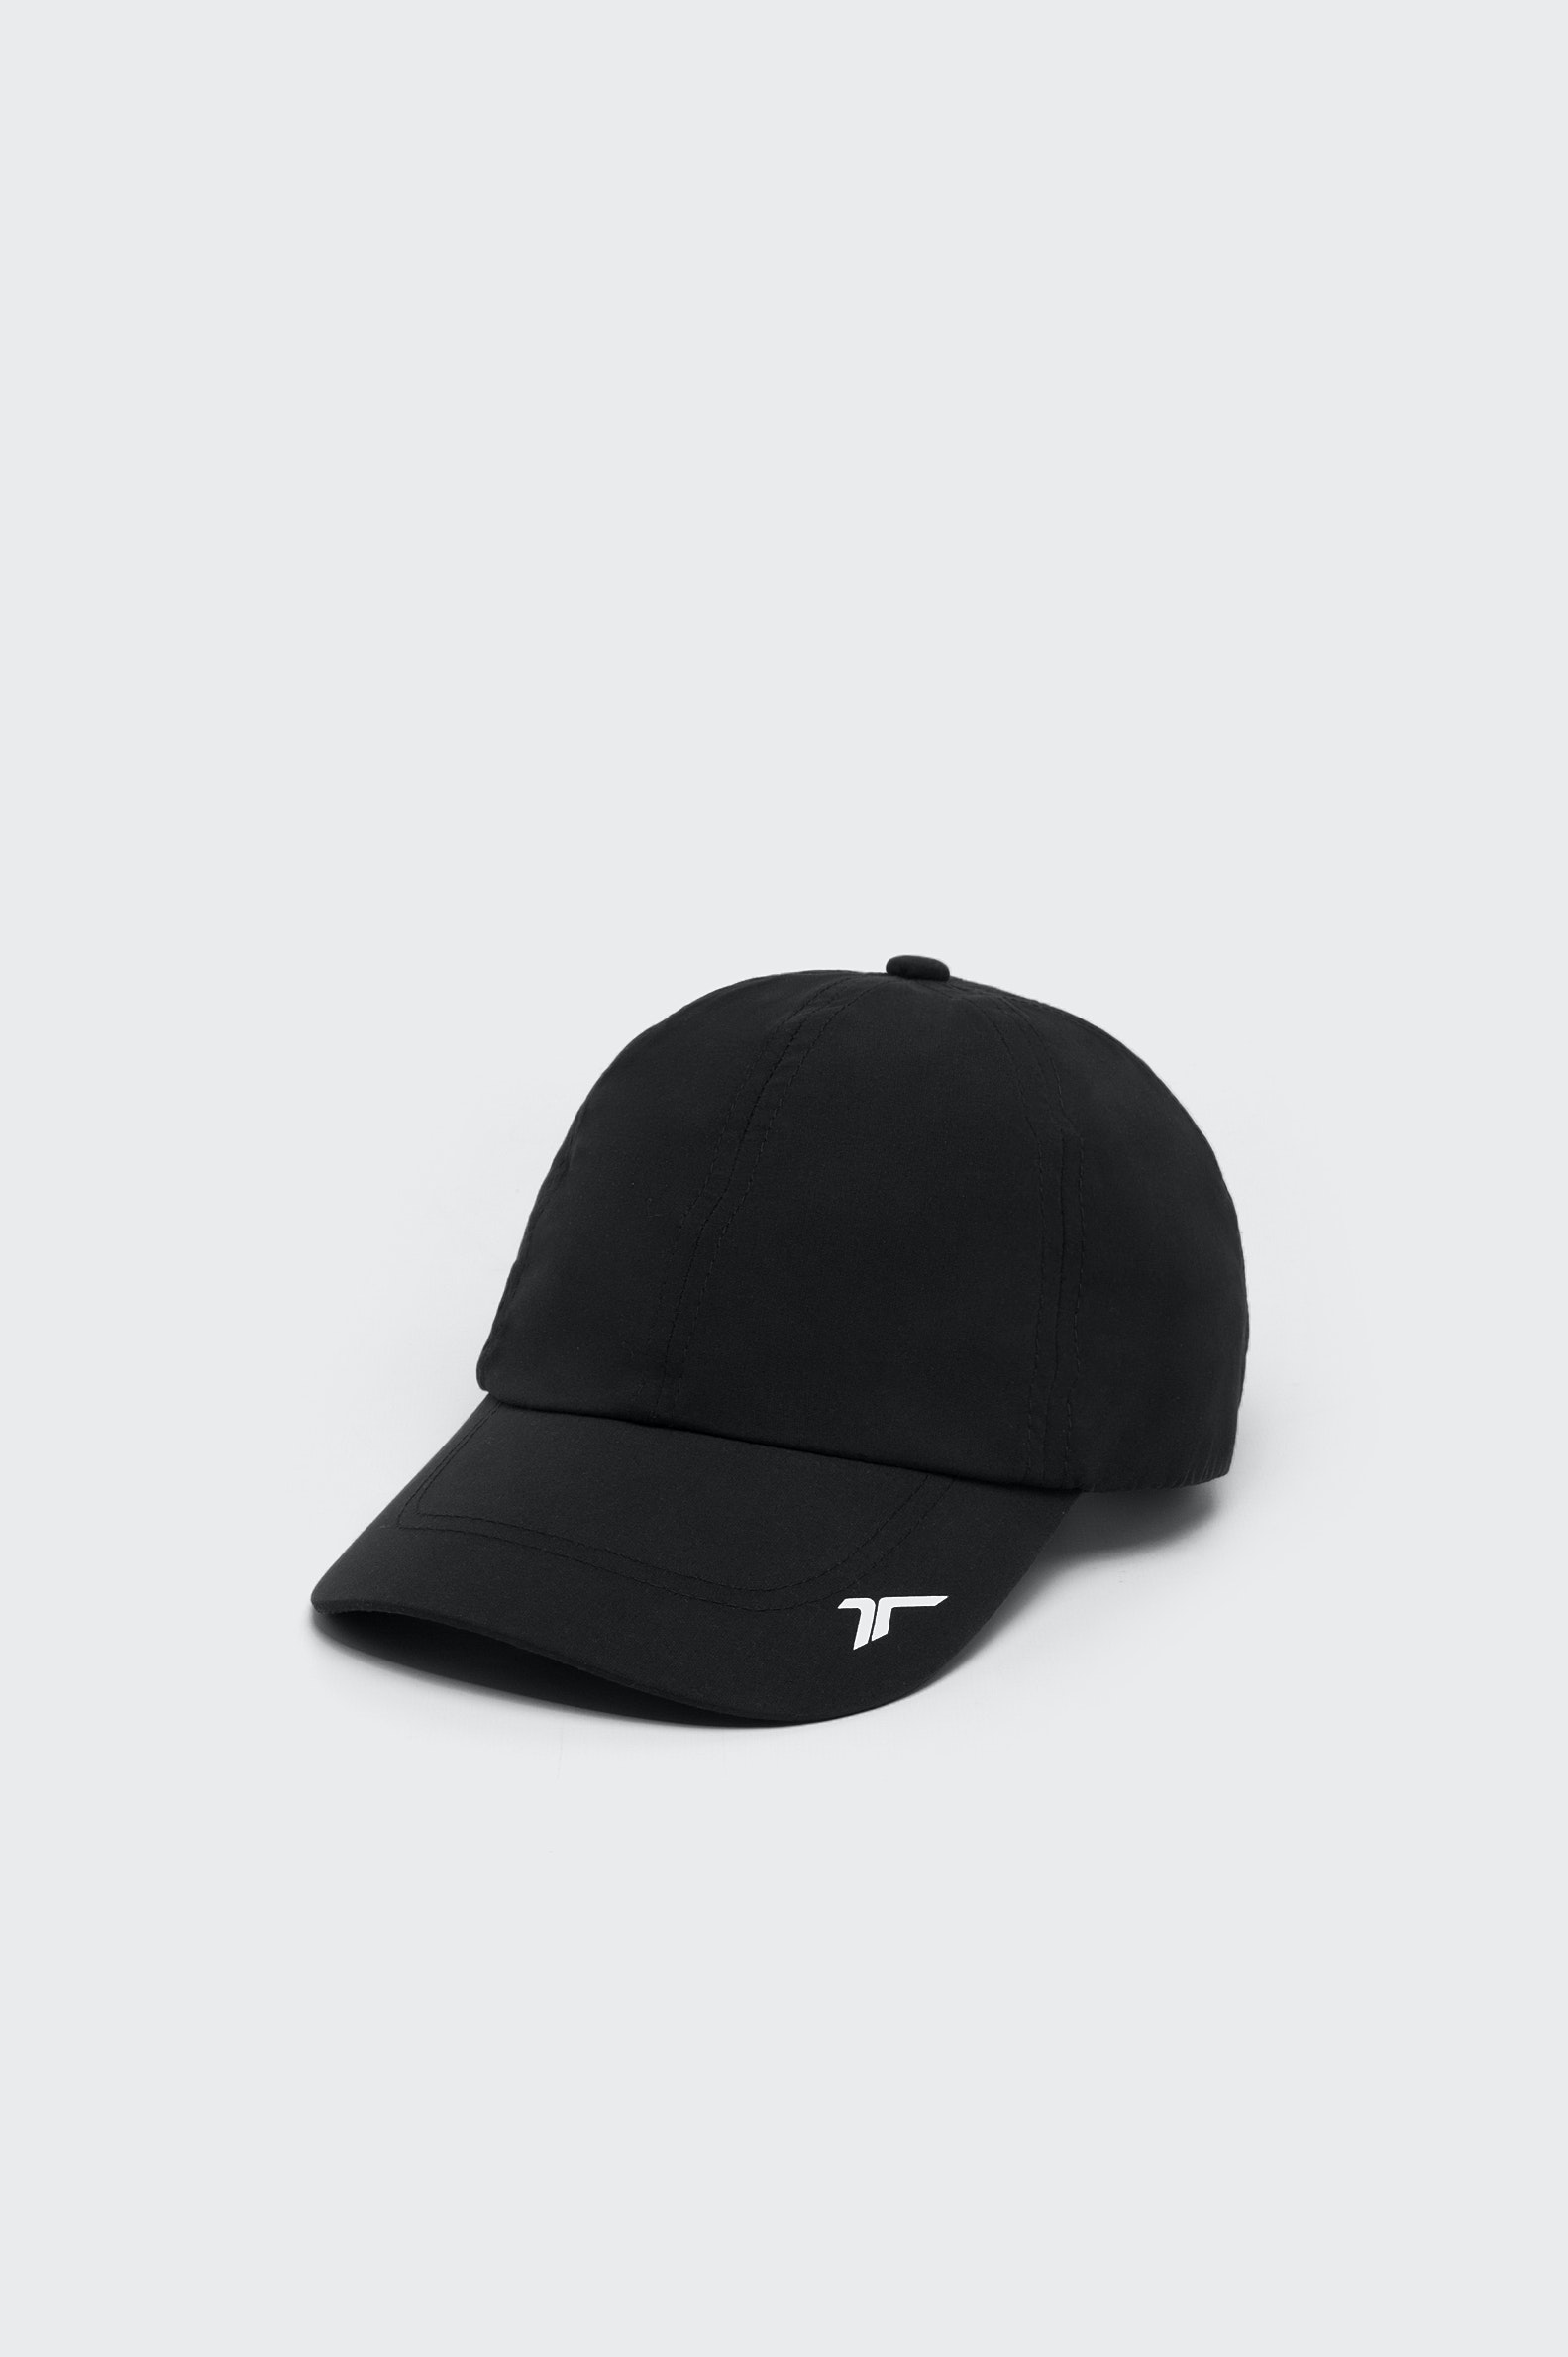 CASQUETTE FREESTYLE TENTH S21-SM-02-GA HOMME